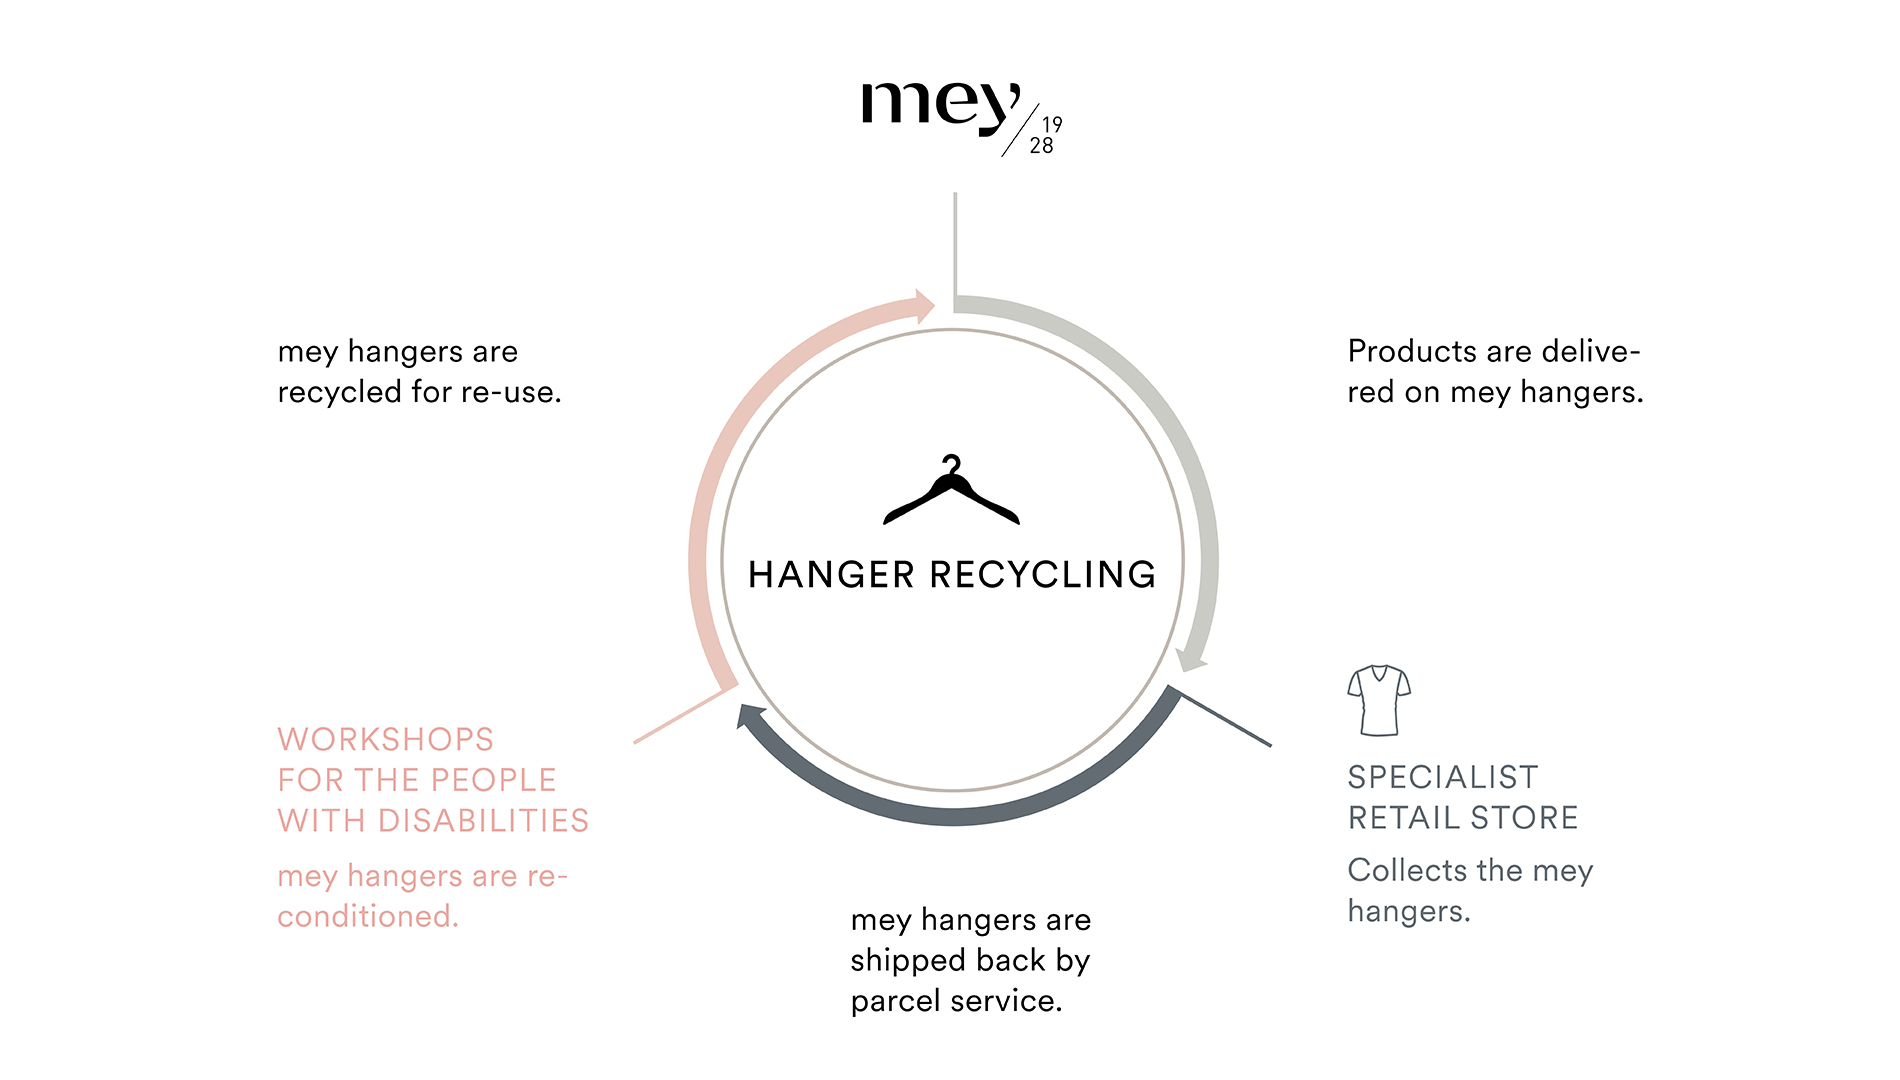 """hanger cycle, the """"Swabian boomerang"""", graphic shows the sequence of processes from delivery to retailers, return and re-processing, to reuse 